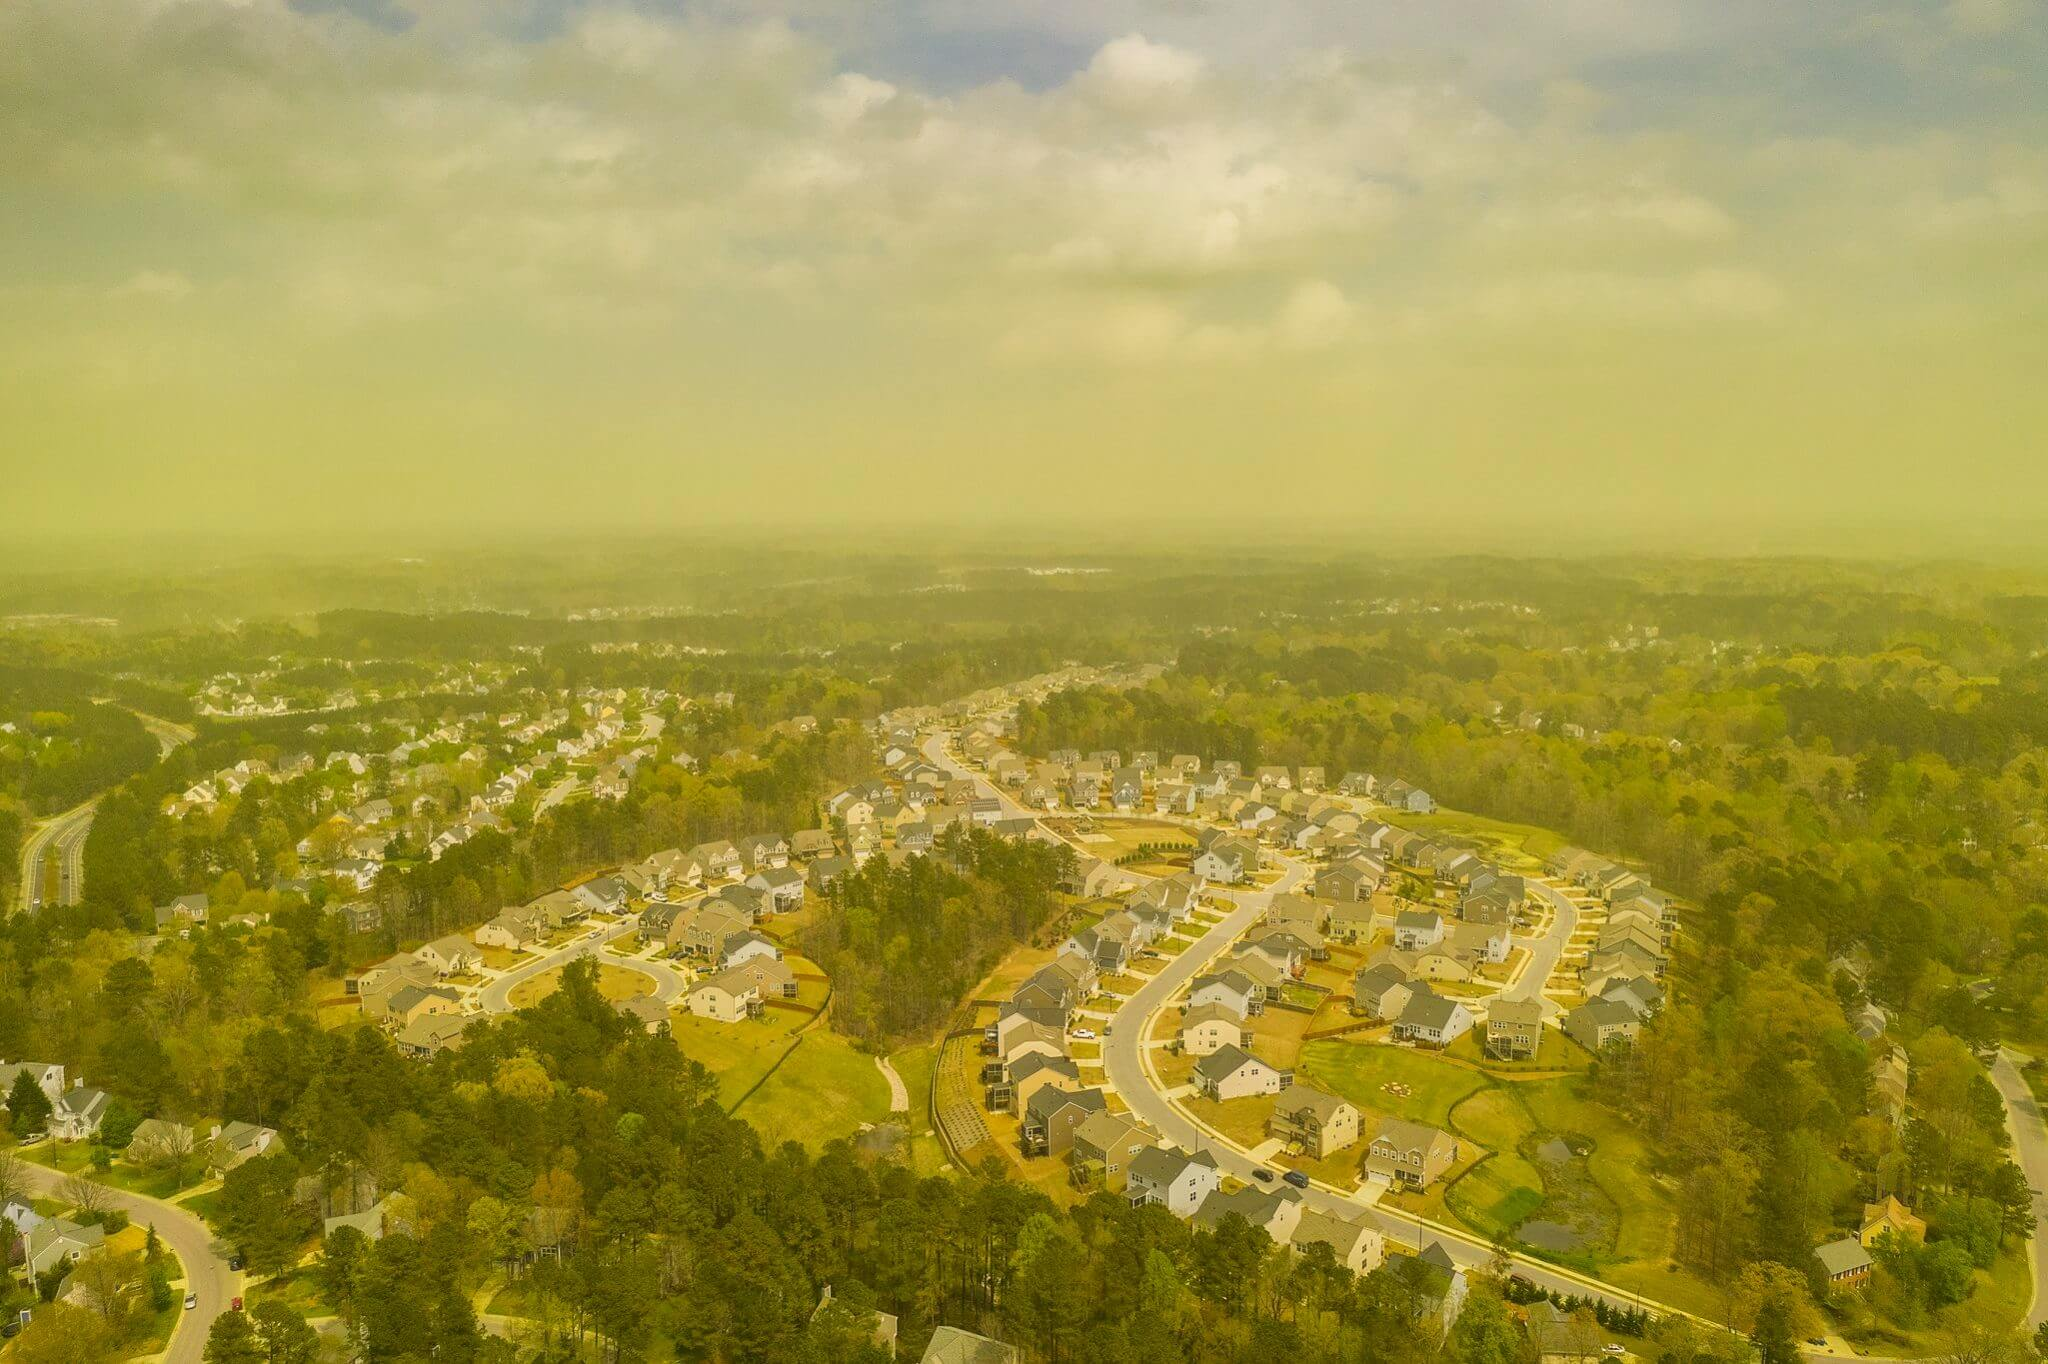 durham sky is haunted by a cloud of pollen